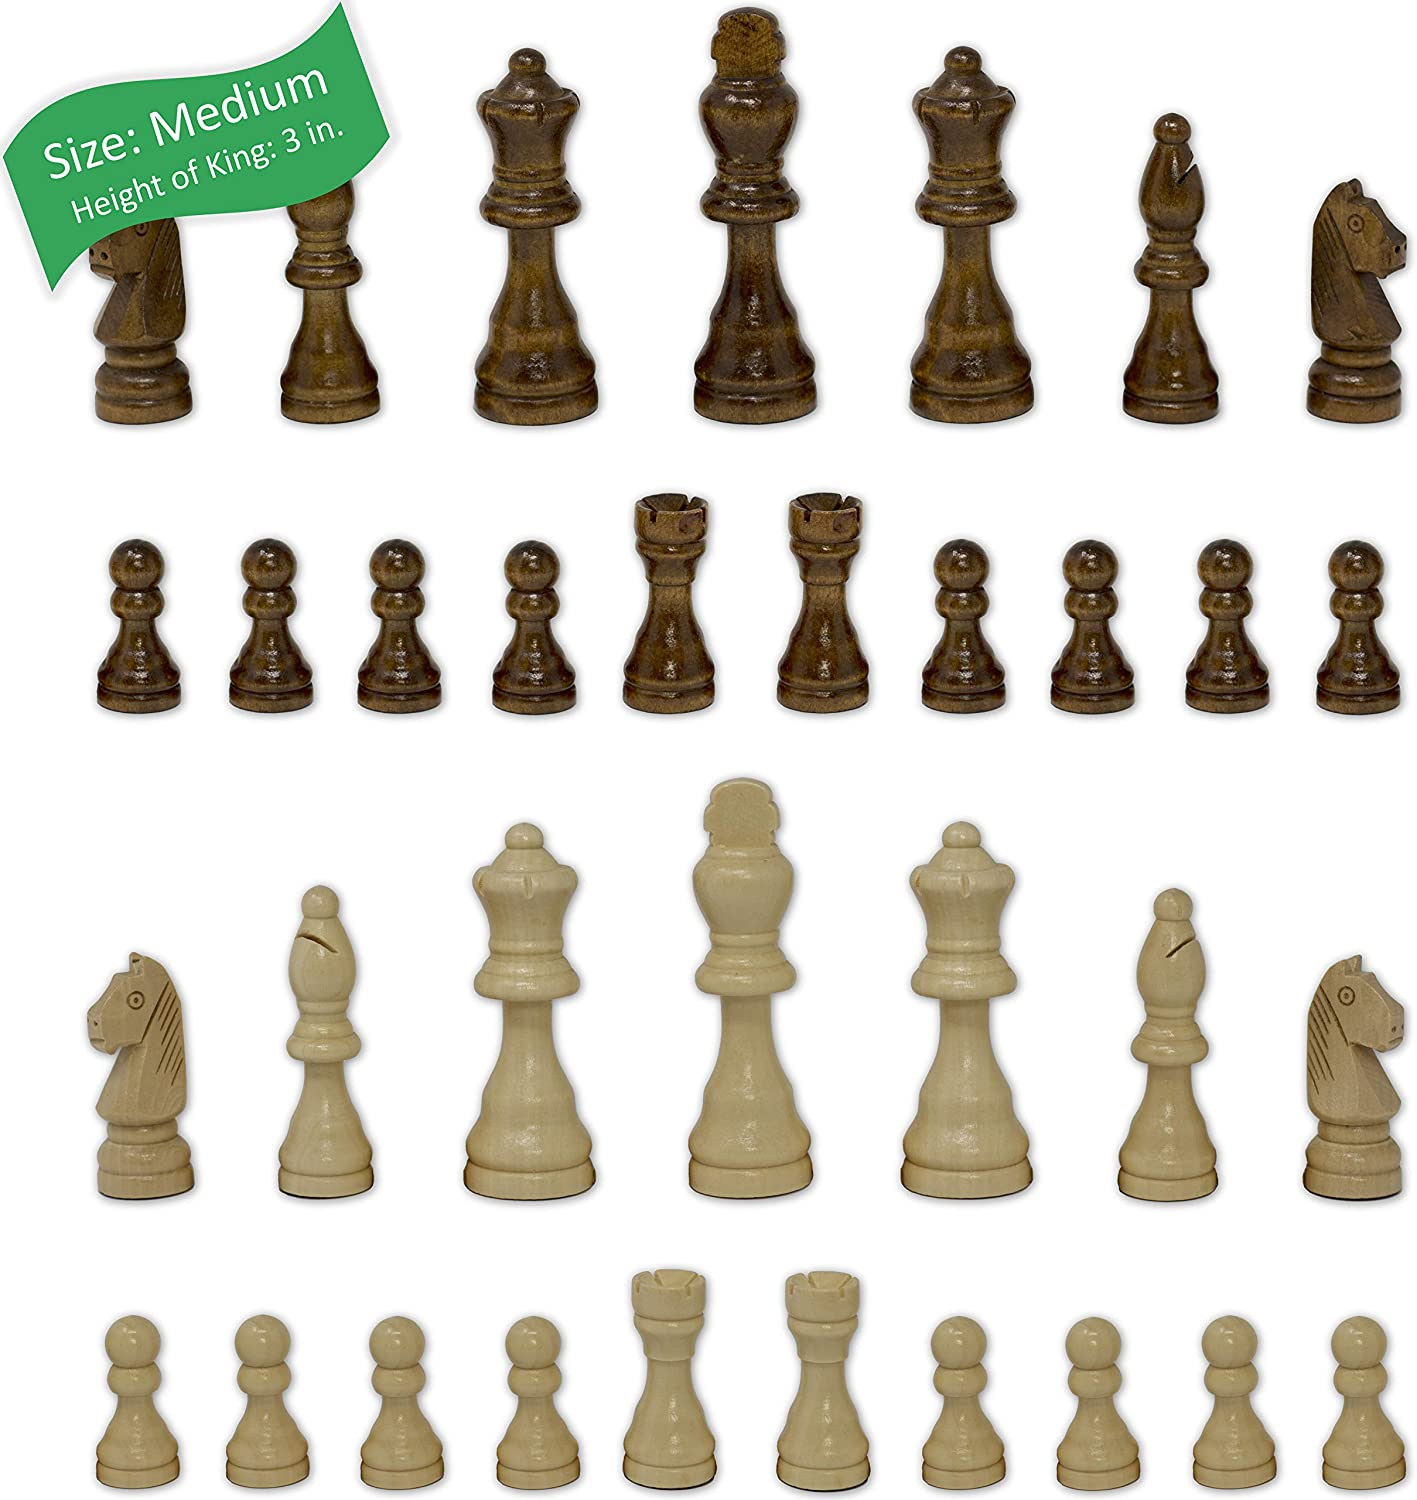 Staunton Chess Pieces by GrowUpSmart with Extra Queens | Size: Medium - King Height: 3 inches | Wood